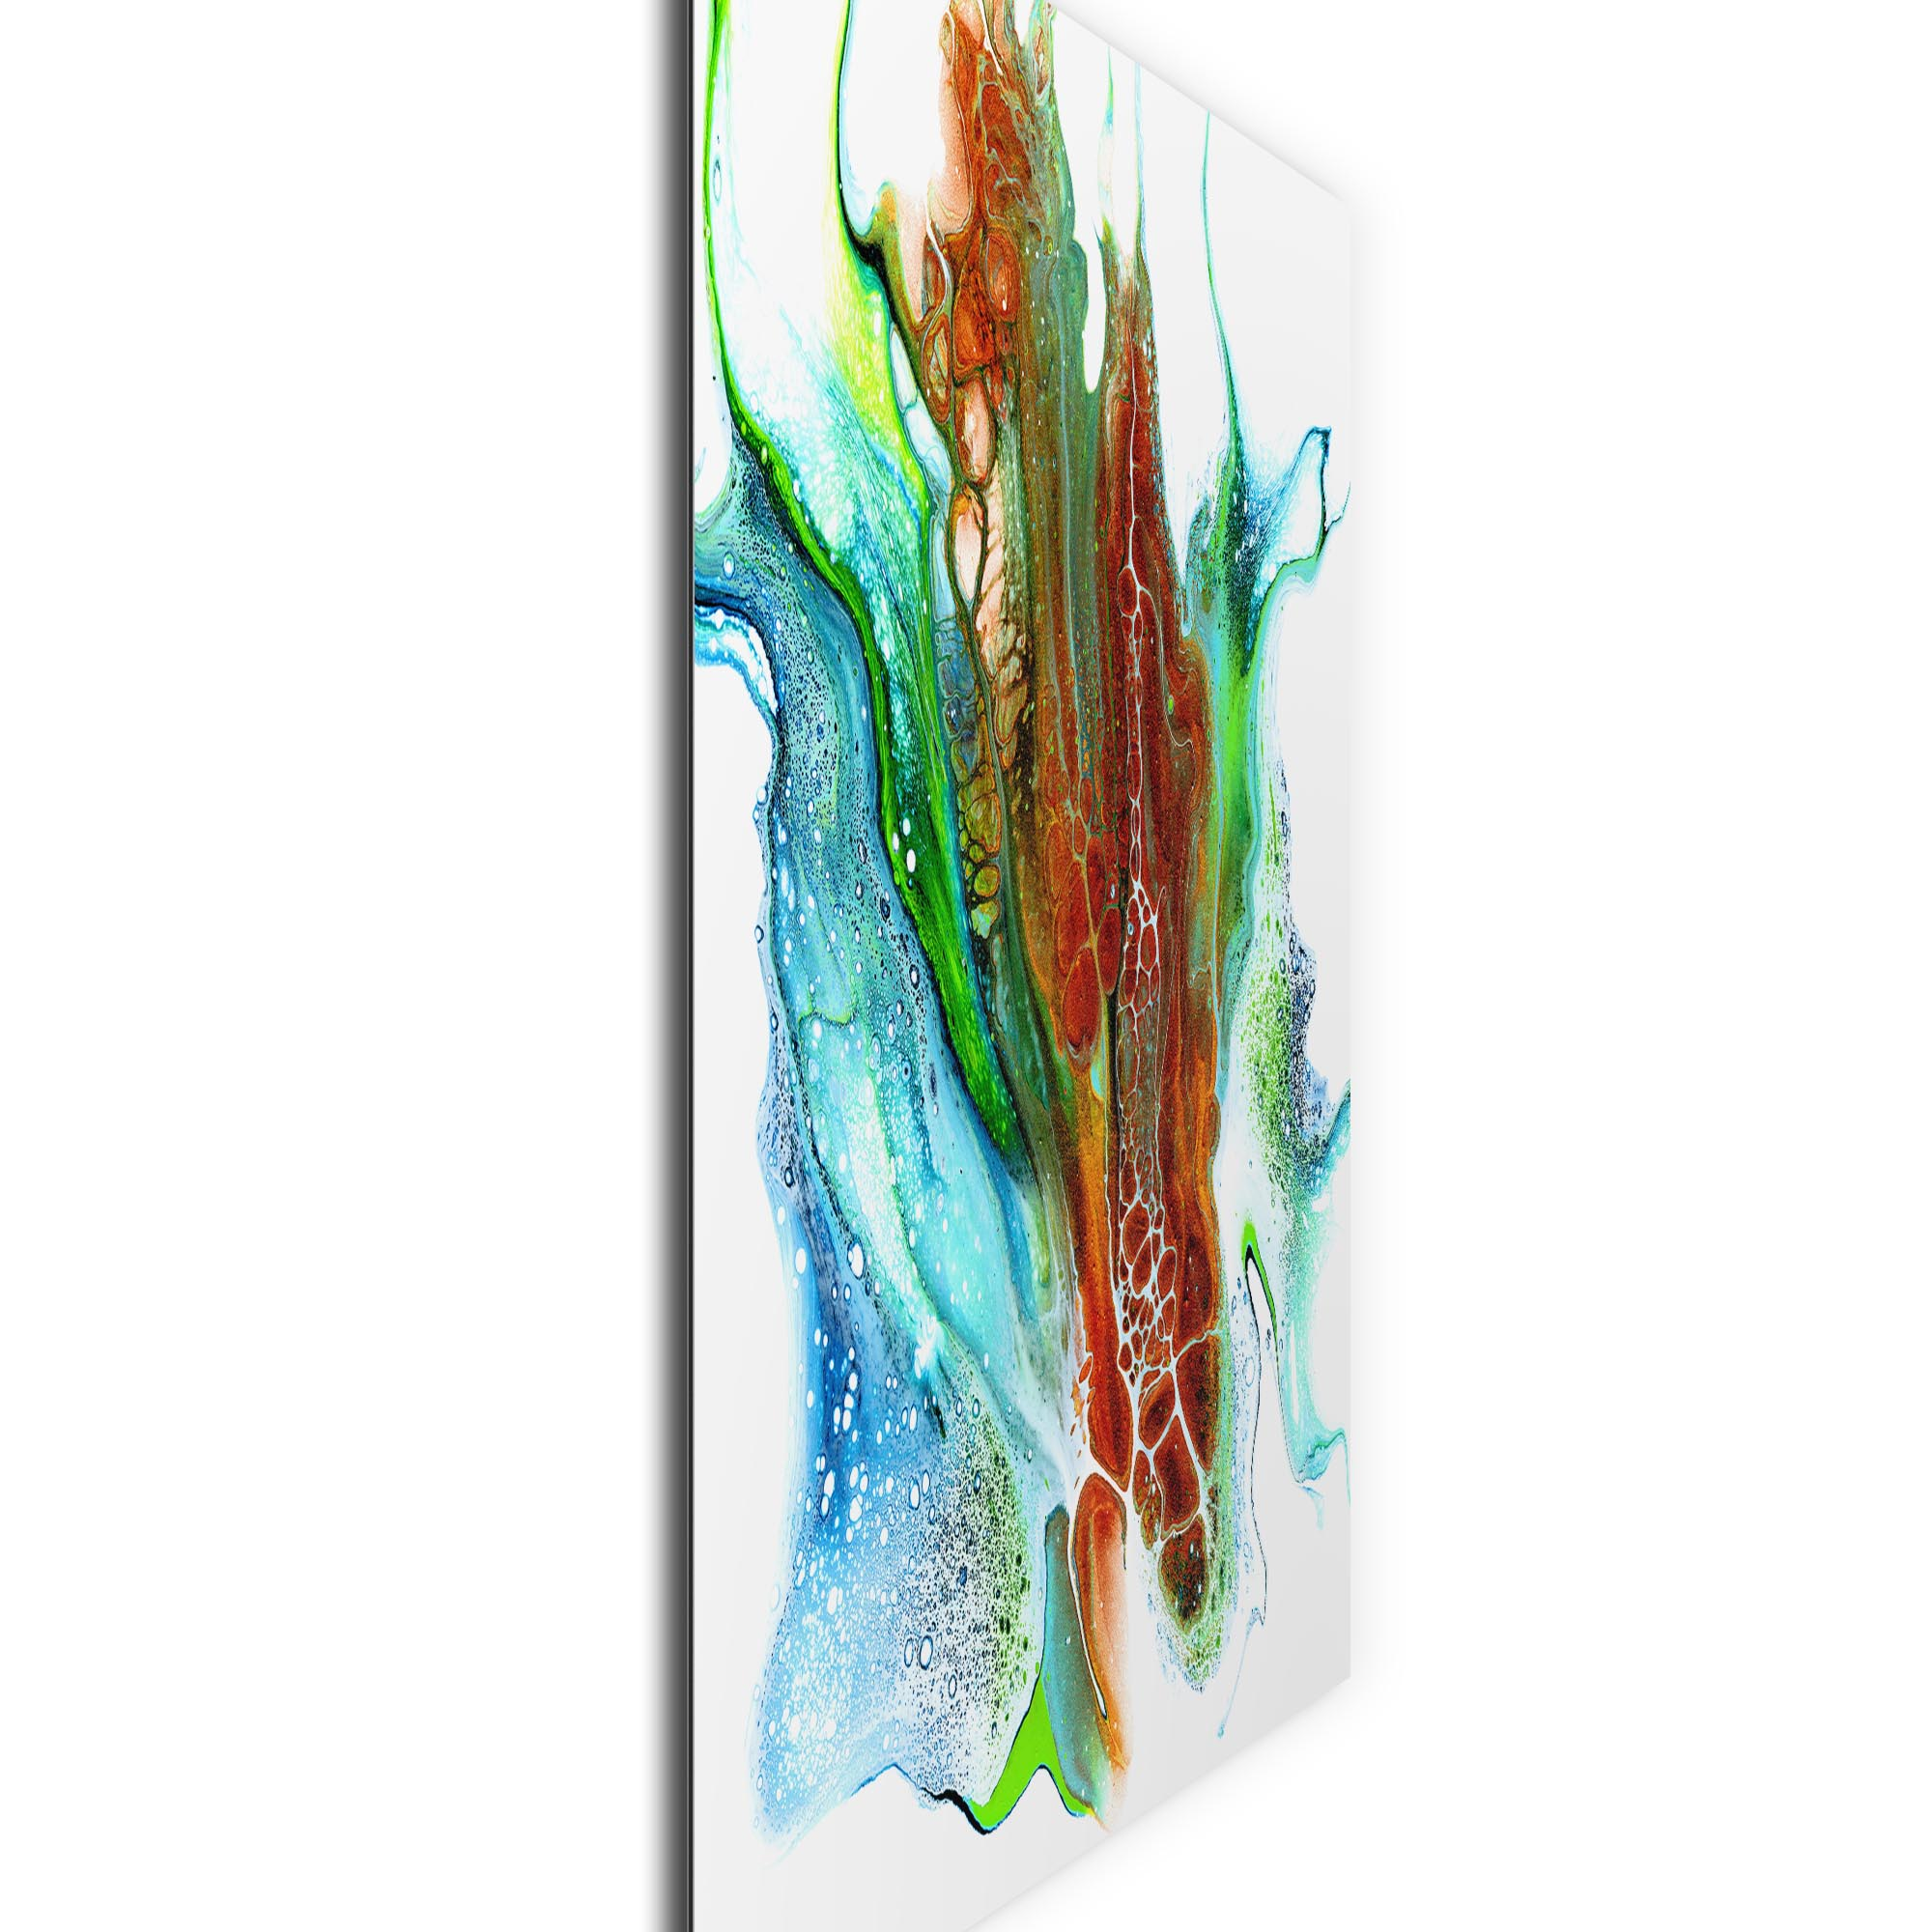 Oxidation by Elana Reiter - Abstract Wall Art, Modern Home Decor (36in x 36in) - Image 2